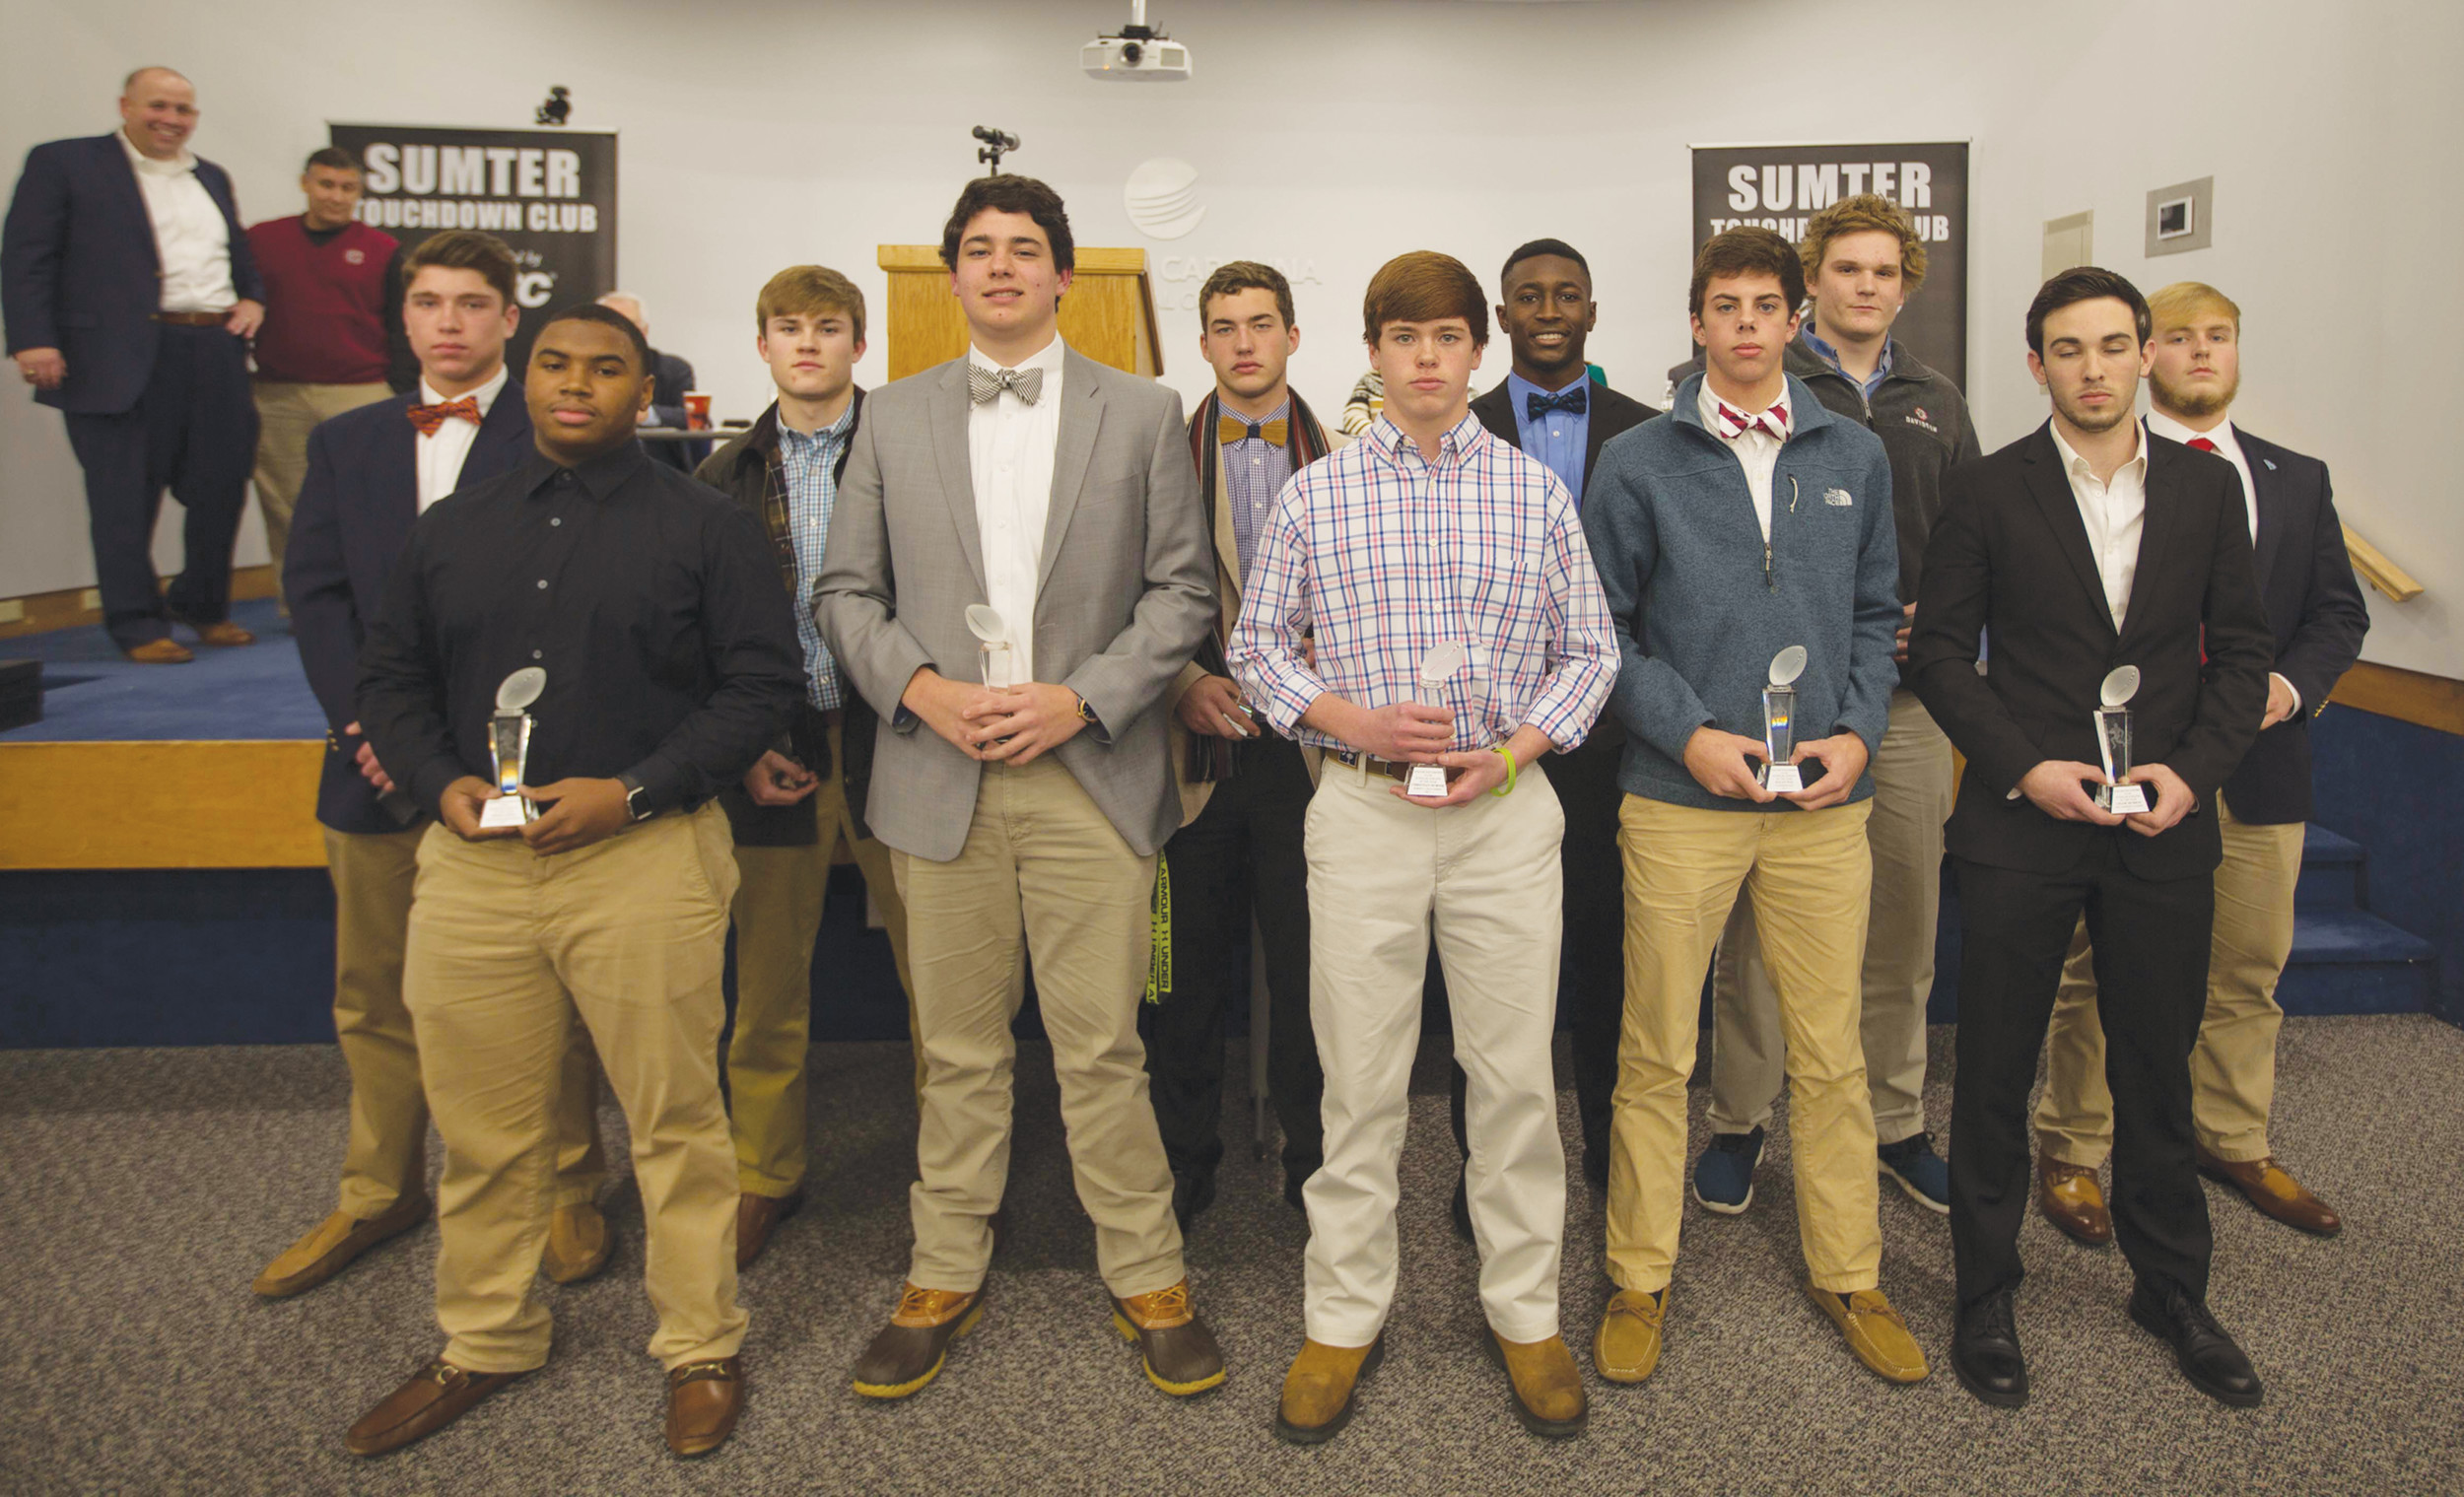 The Sumter Touchdown Club honored a number of local high school athletes during its annual banquet on Thursday, Jan. 18. The scholar athletes recognized by the club display their plaques.